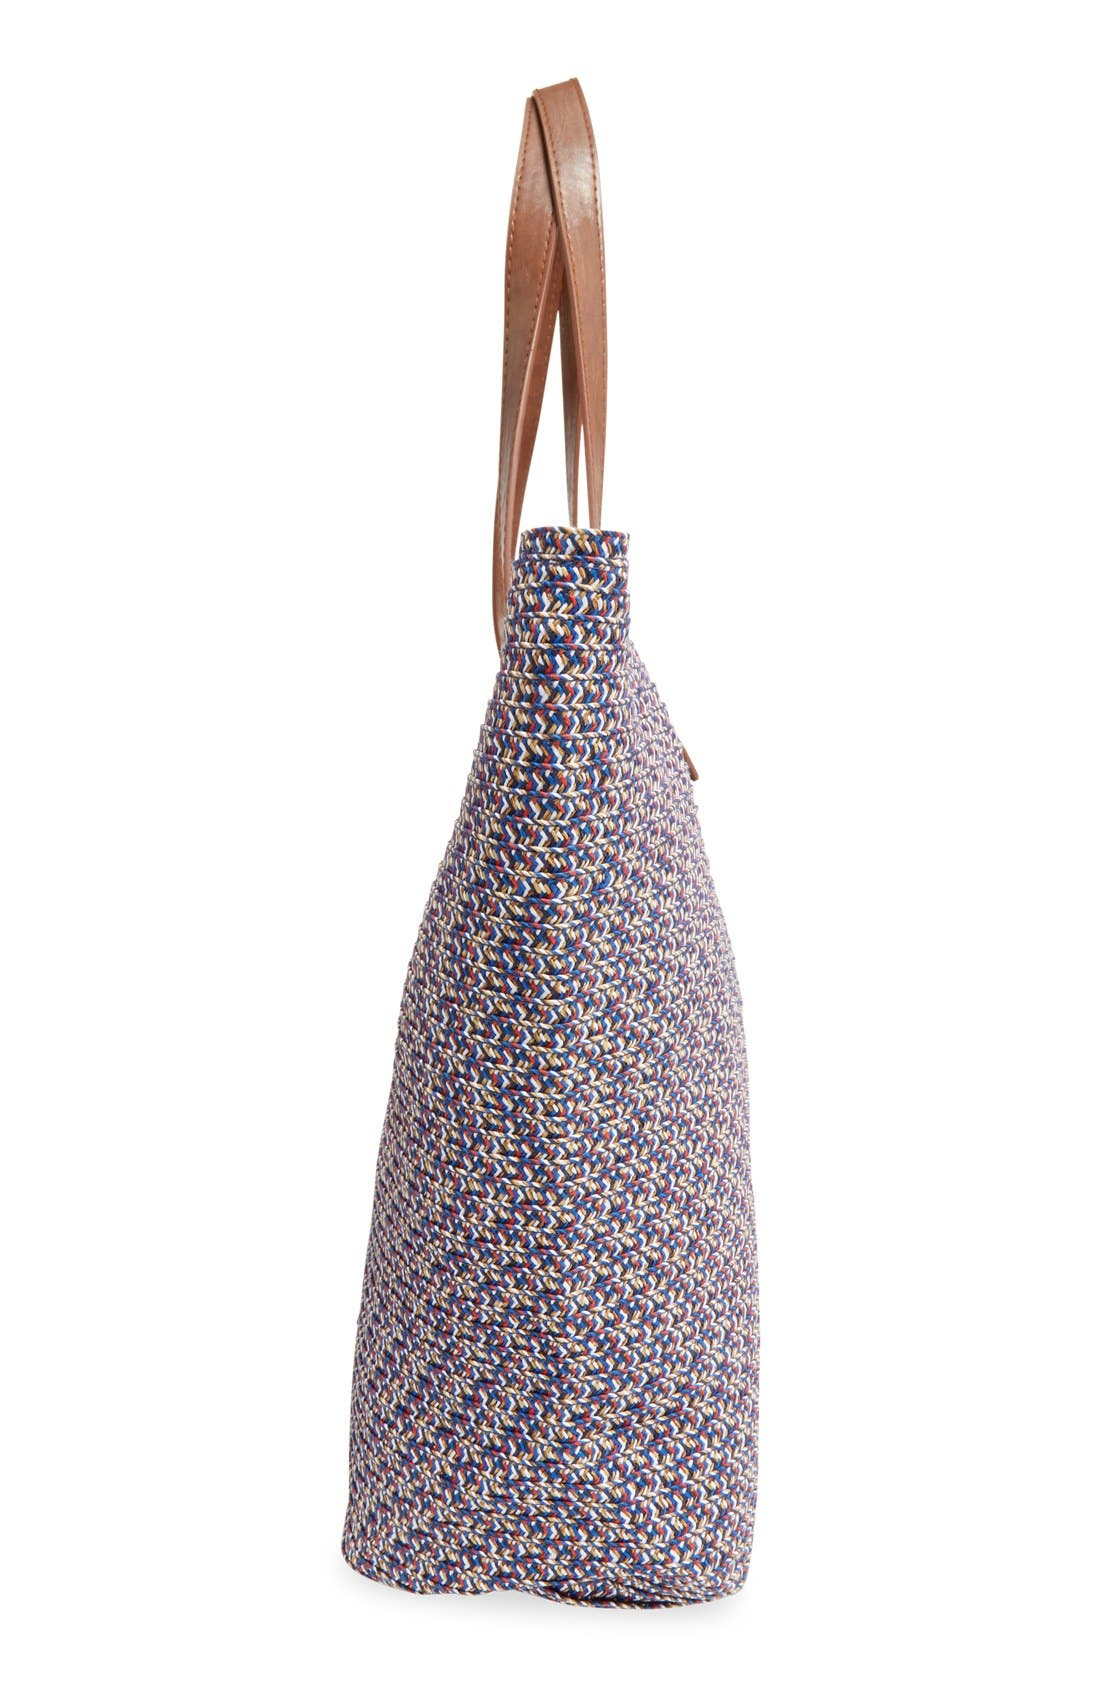 Woven Straw Tote,                             Alternate thumbnail 6, color,                             440